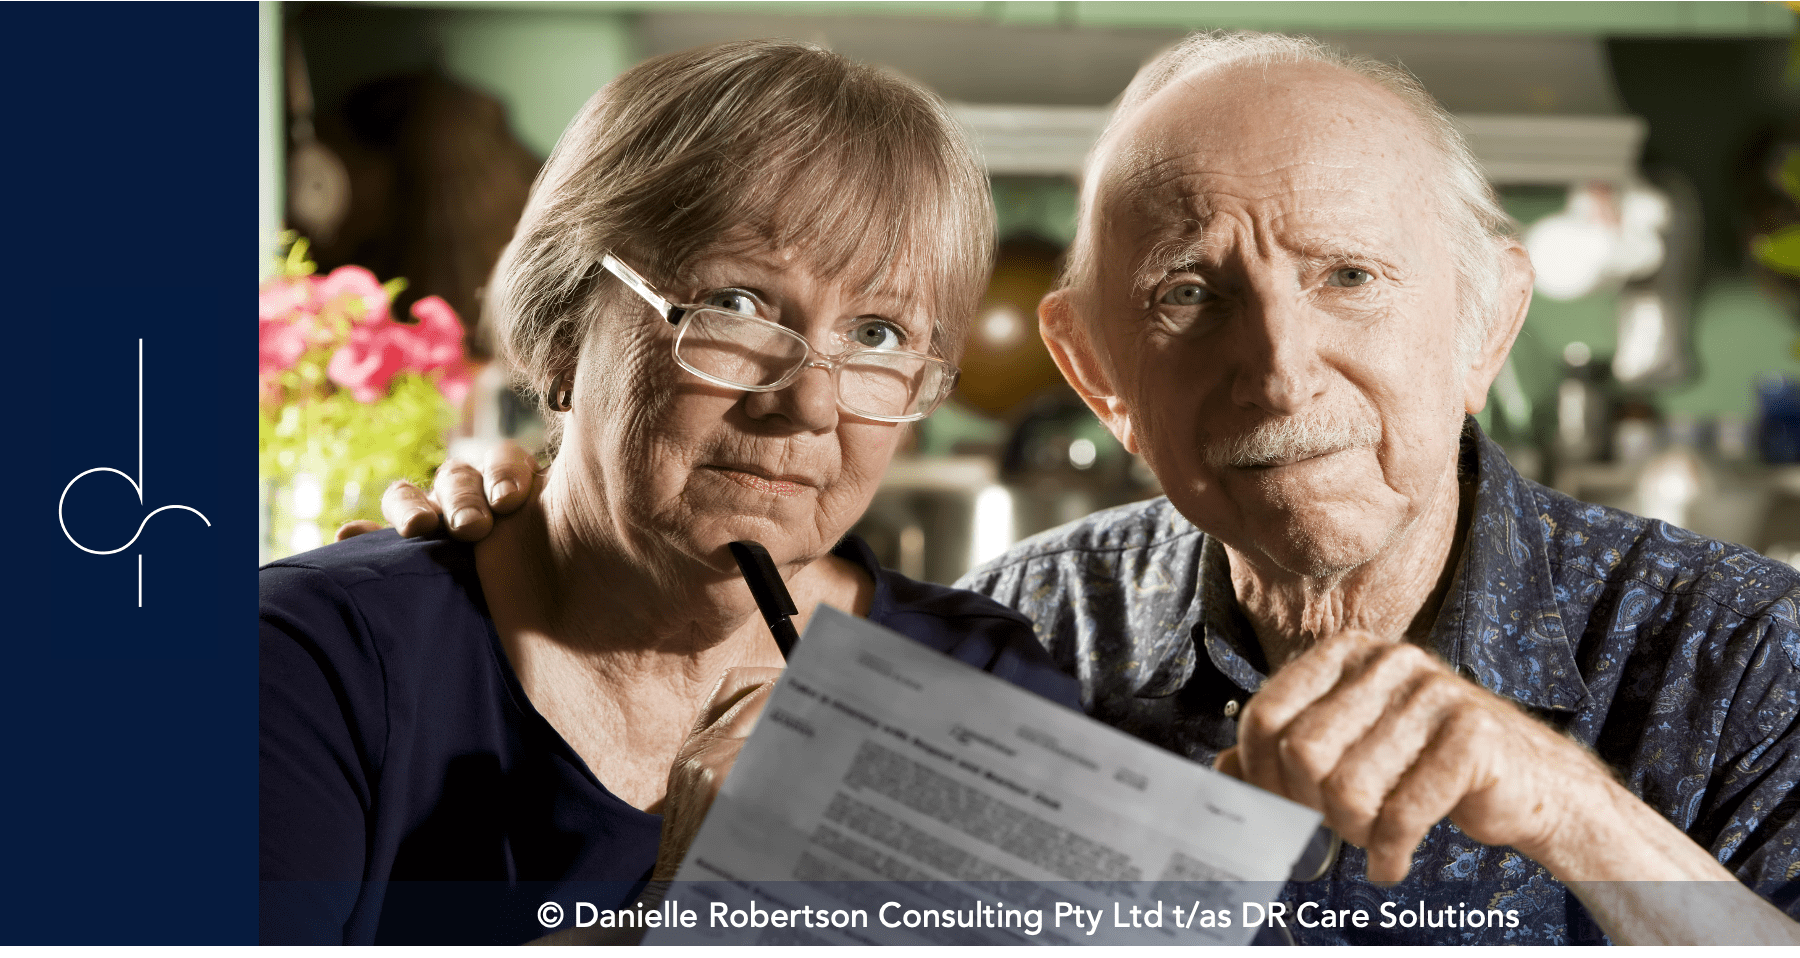 Choosing a Home Care Provider - The 5 Main Questions to Ask